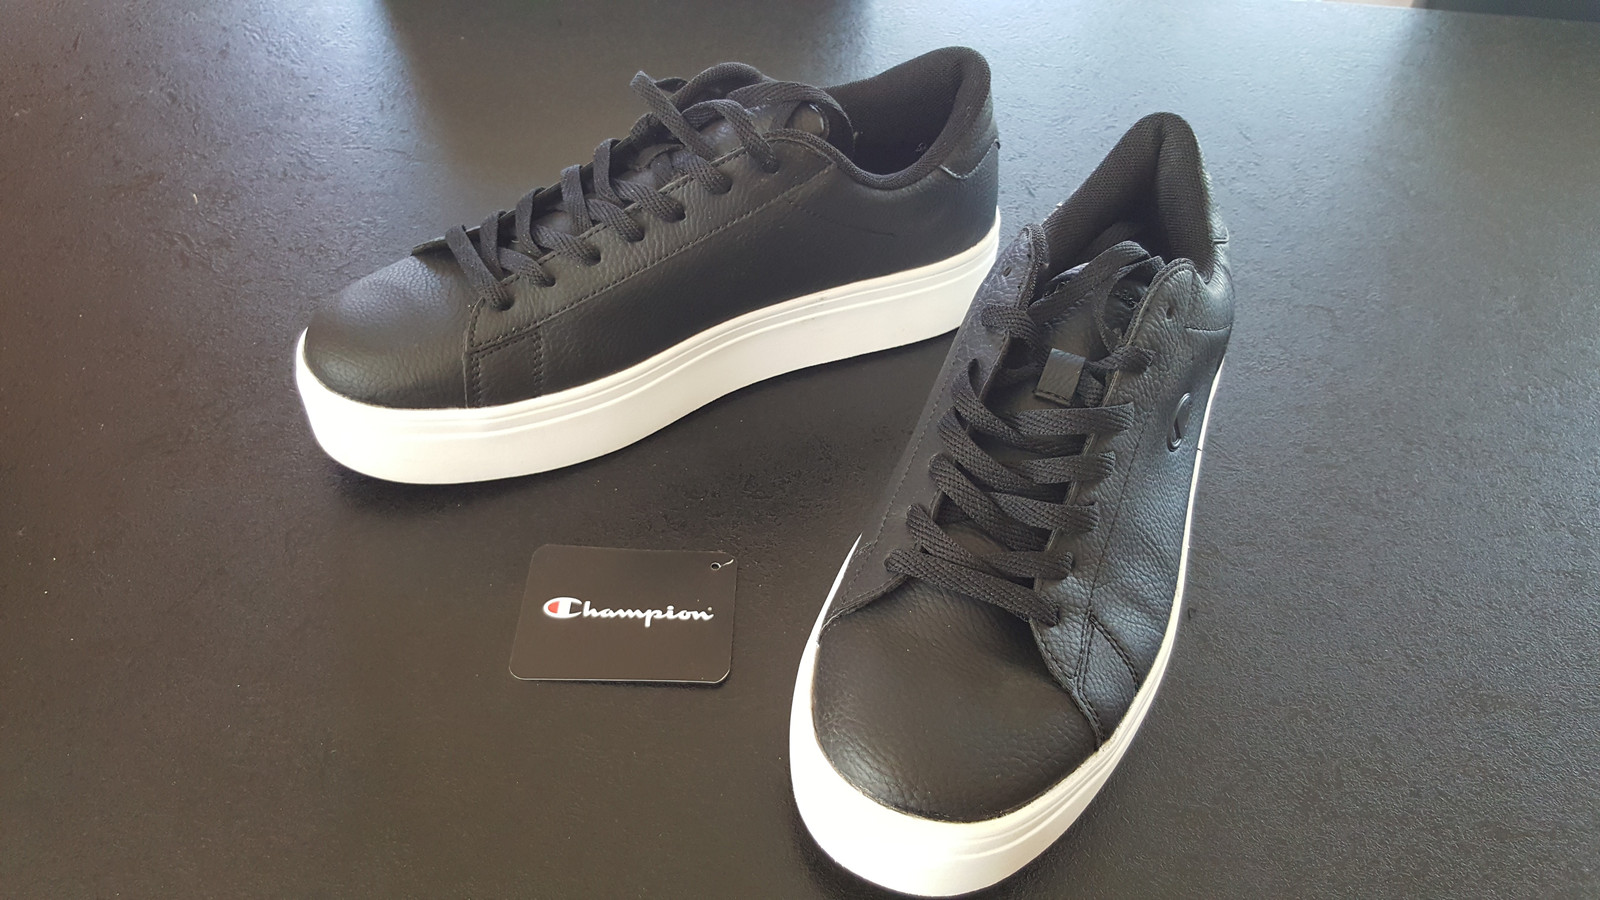 Champion sneakers, plattform, str. 42 | FINN.no